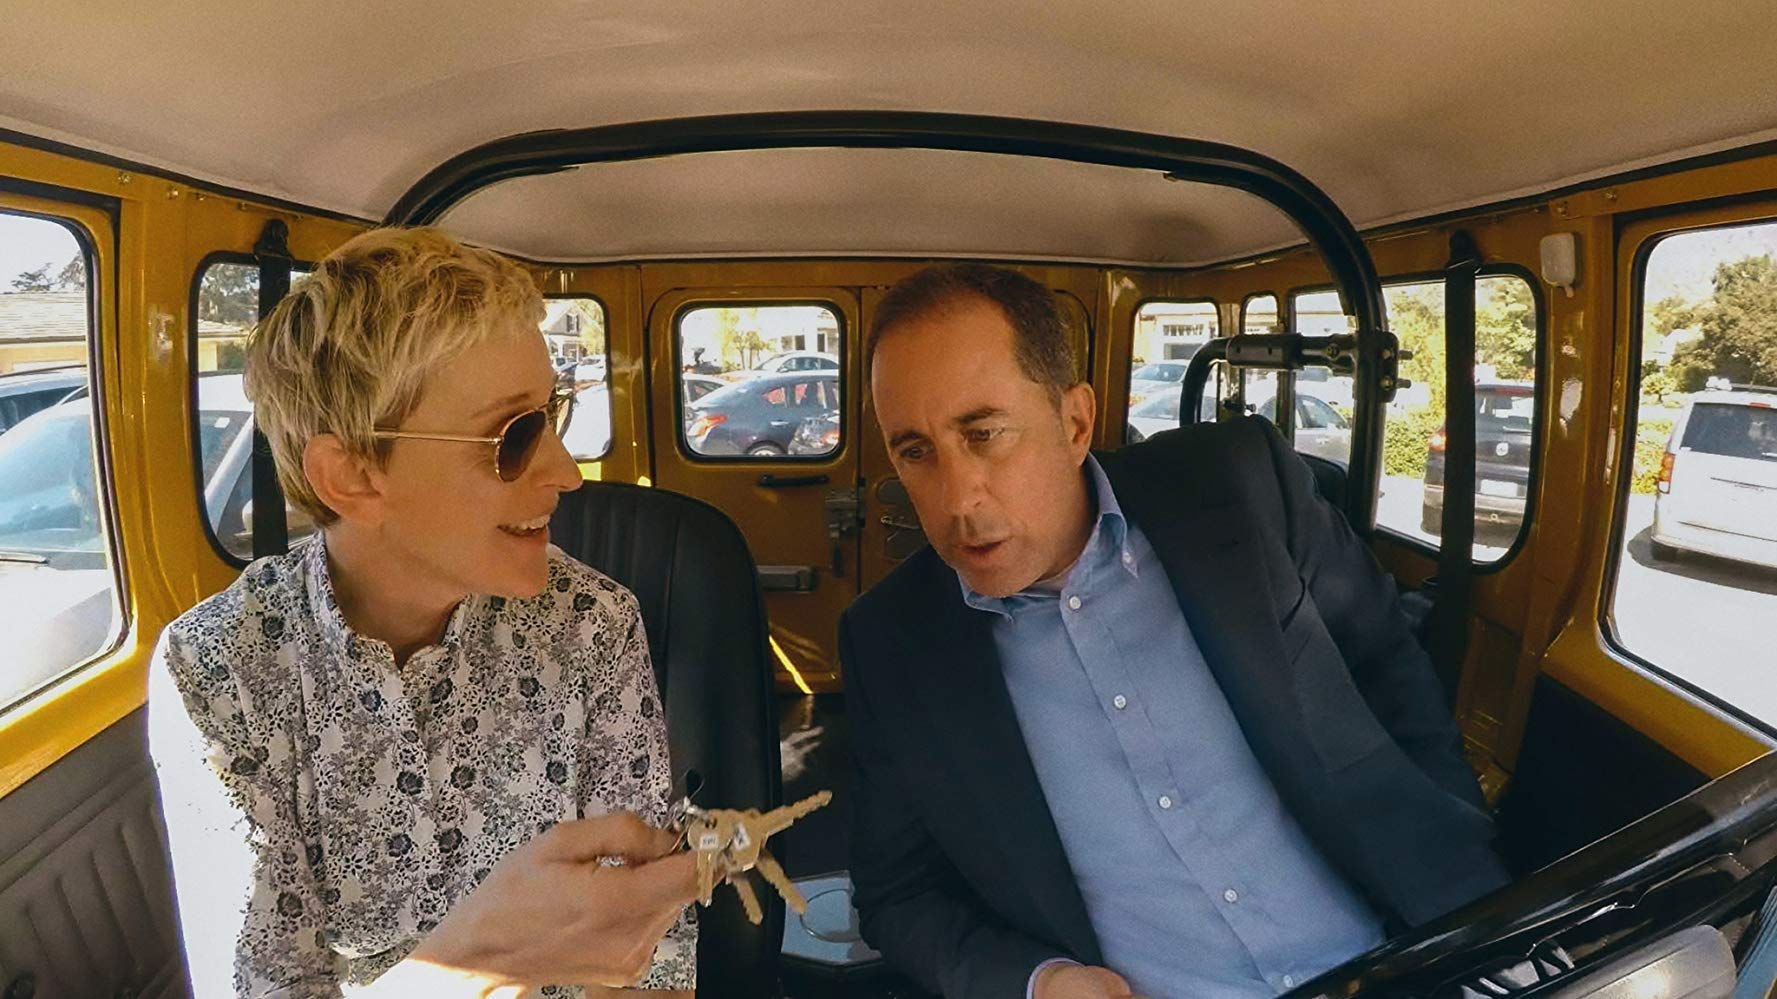 Comedians in Cars Getting Coffee - Season 10